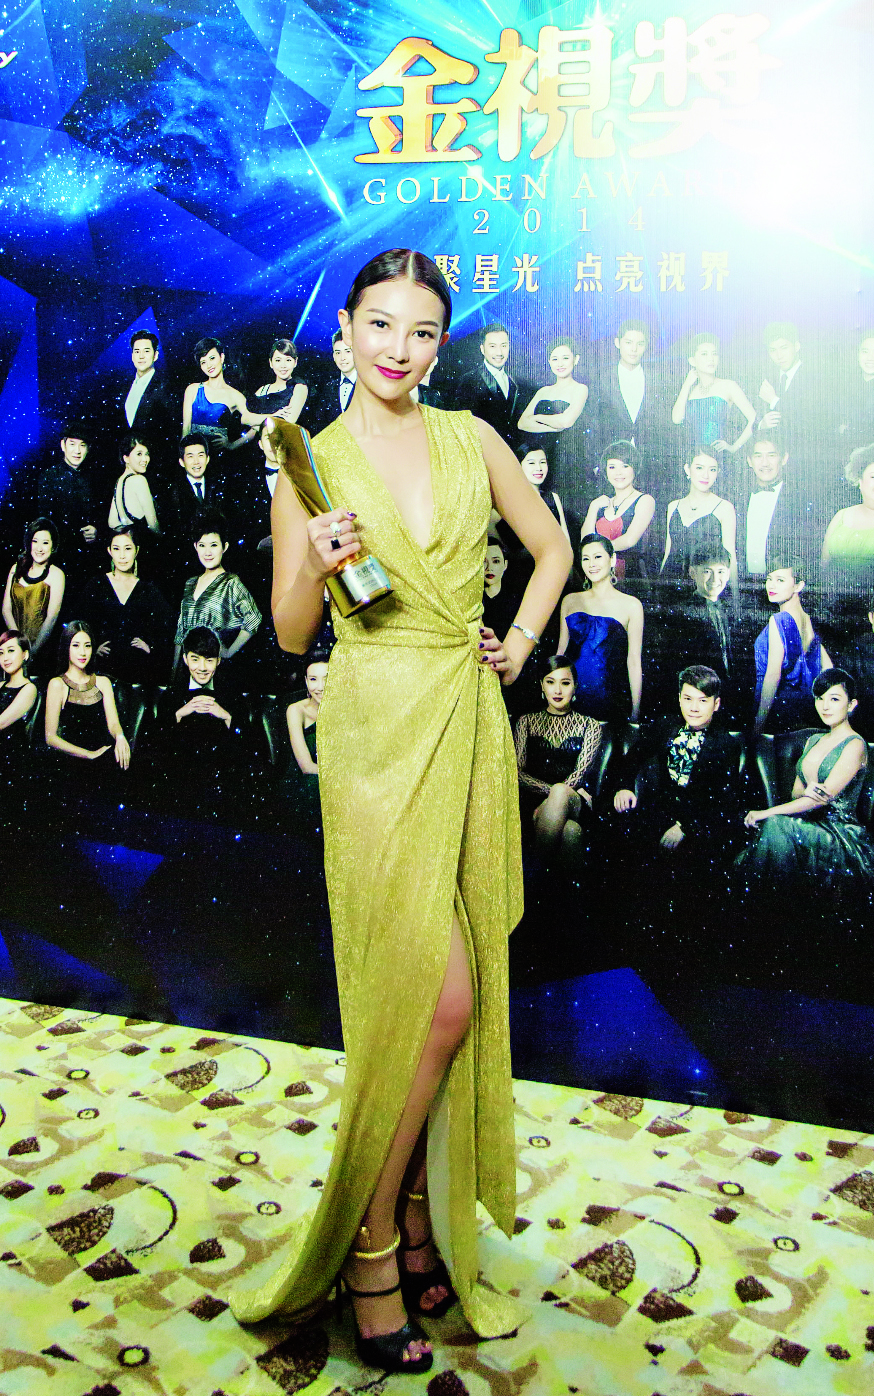 Malaysia - Chris Tong - Golden Award on Sep 20 (2).jpeg